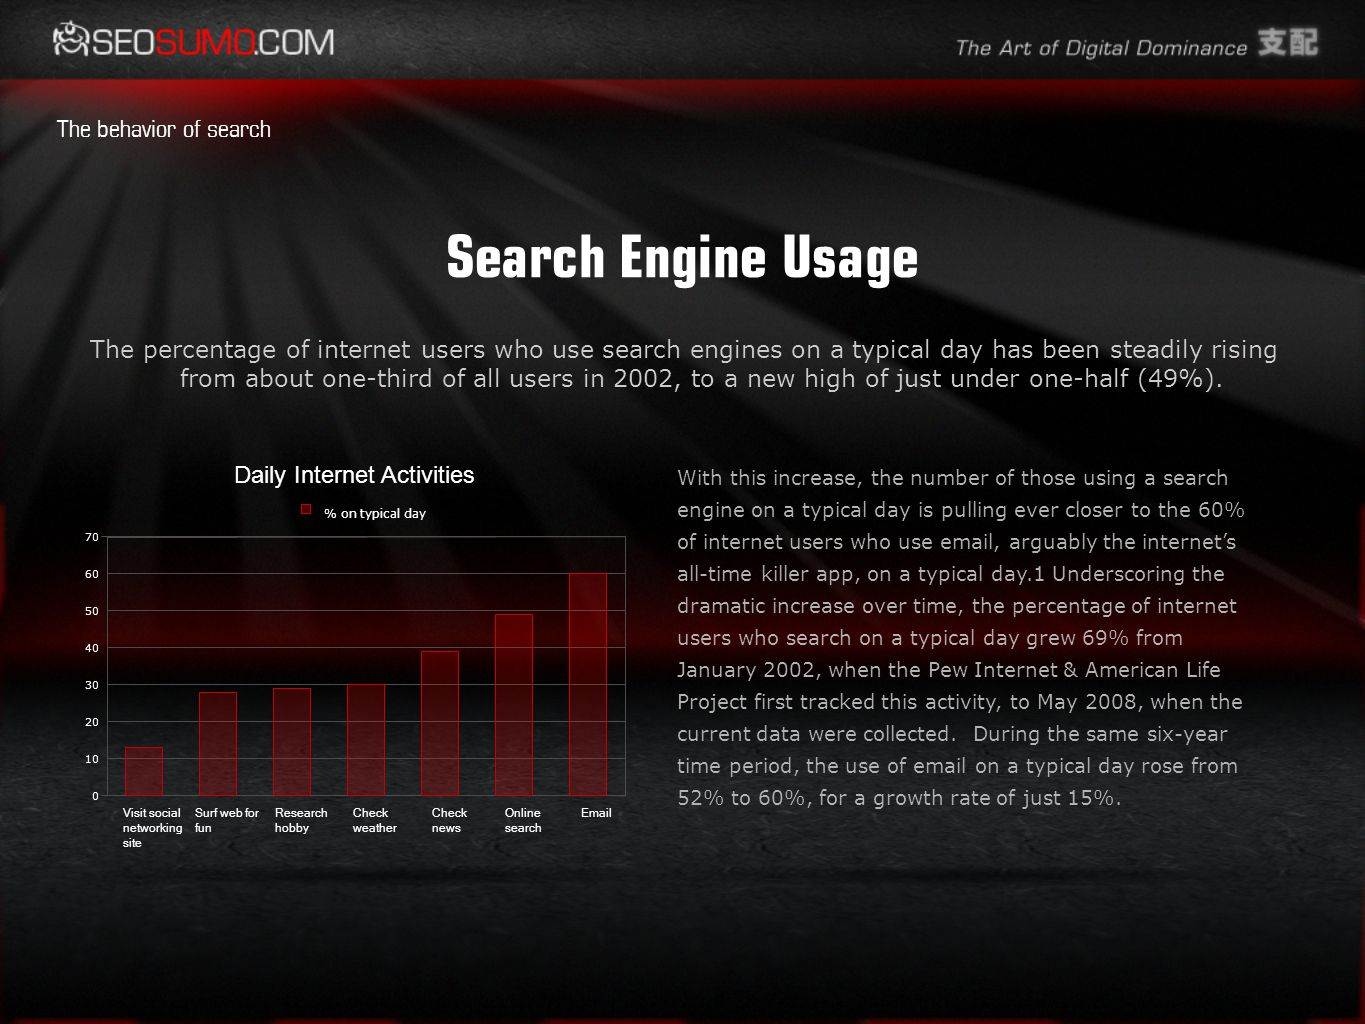 Search Engine Usage The percentage of internet users who use search engines on a typical day has been steadily rising from about one-third of all users in 2002, to a new high of just under one-half (49%).